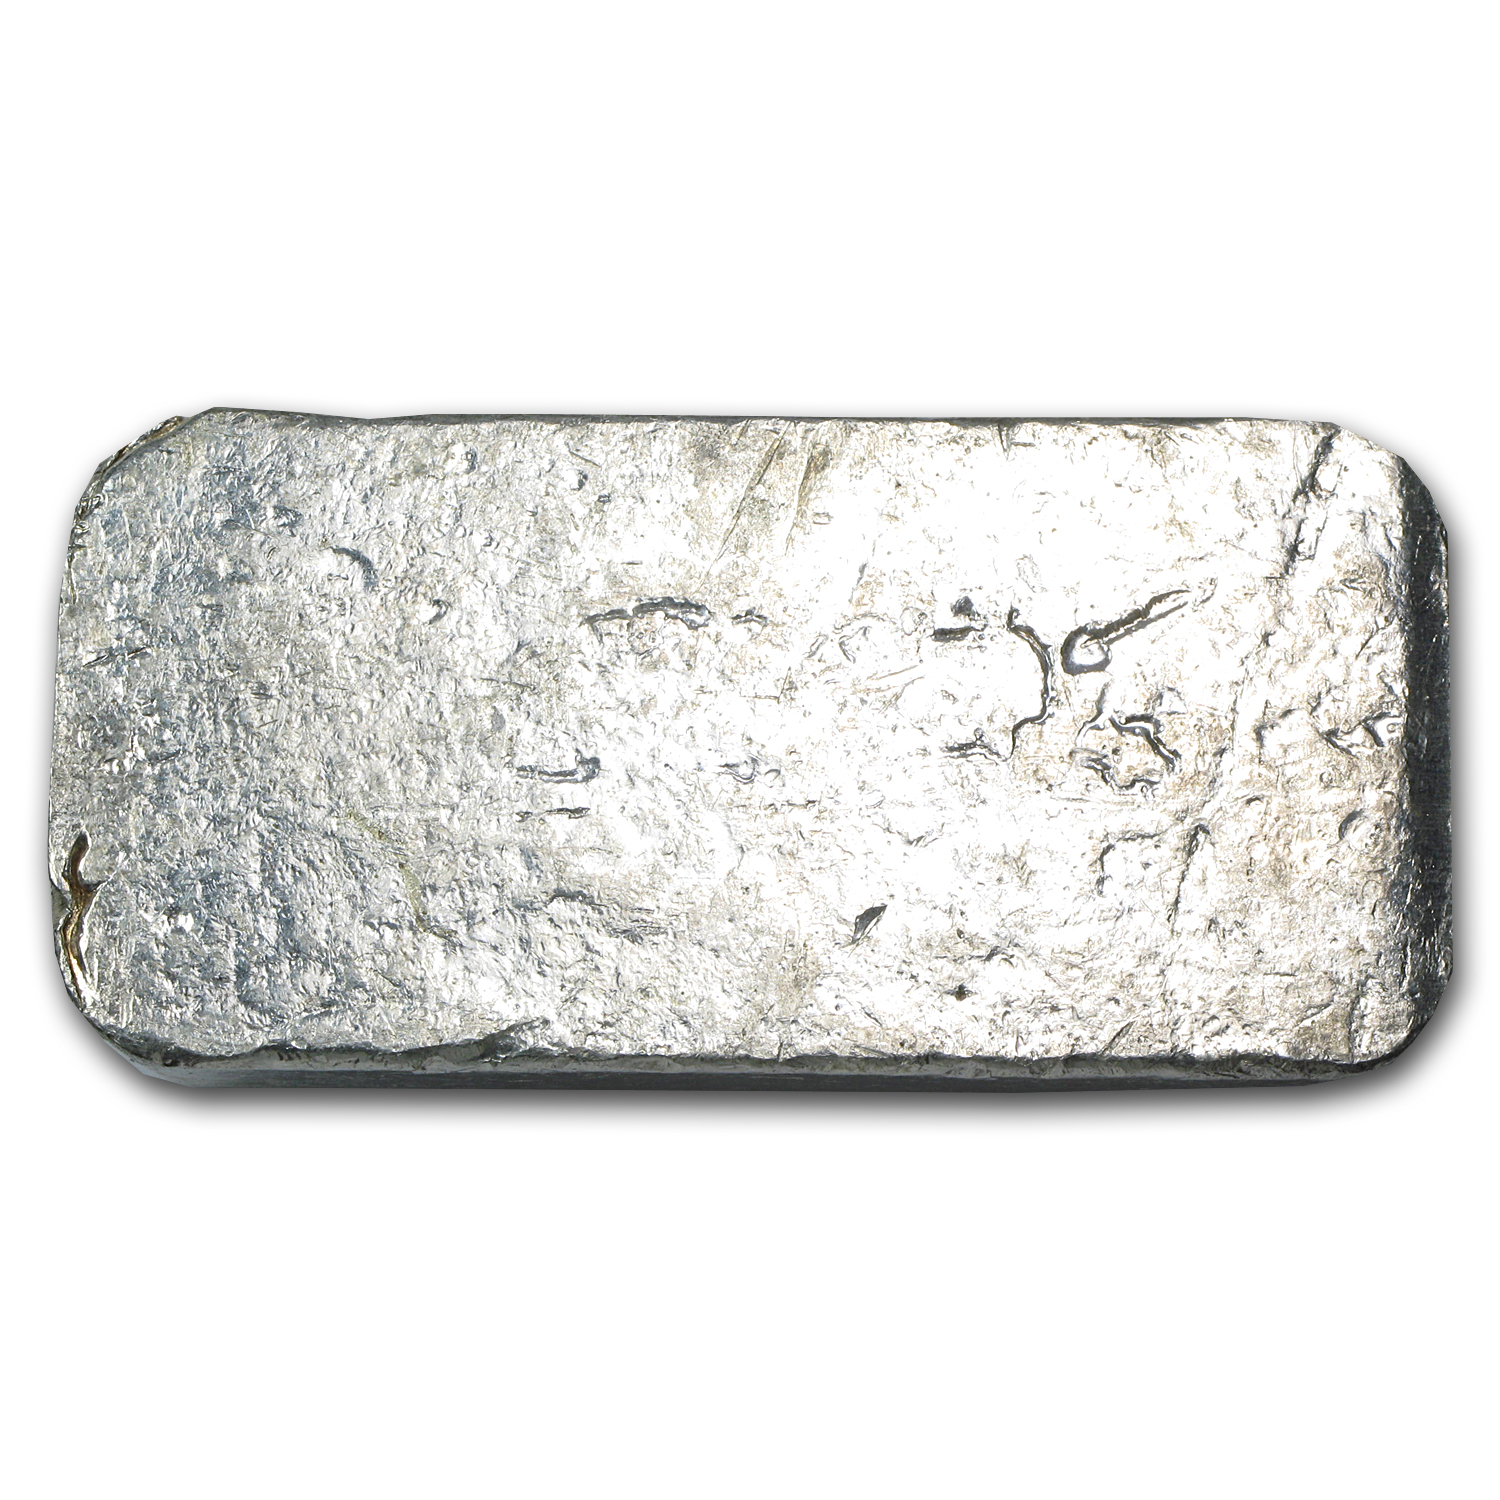 10.32 oz Silver Bar - Star Metals